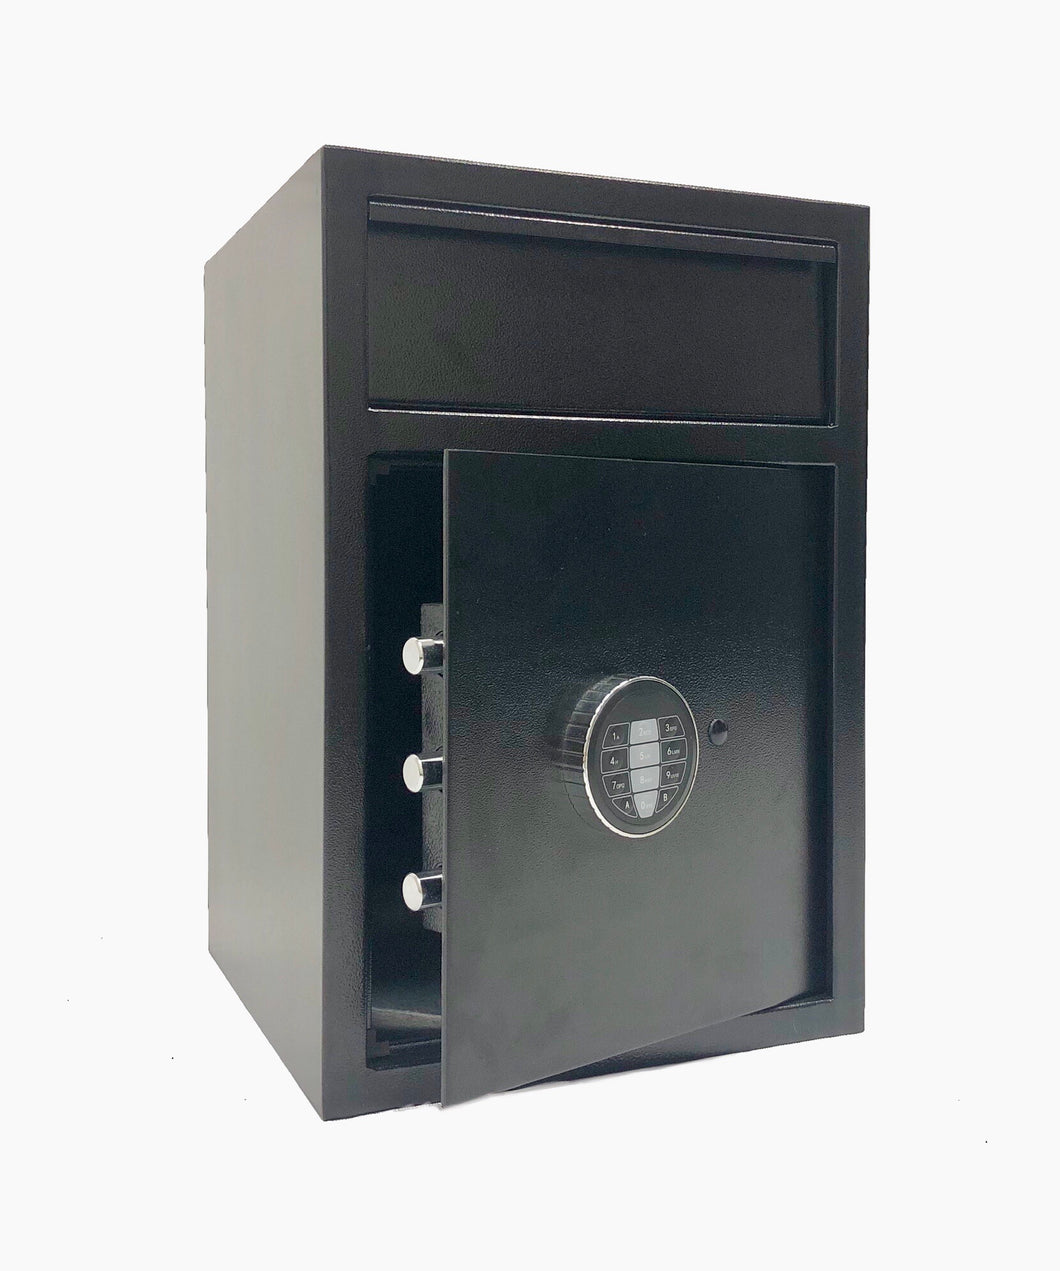 "Southeastern F2014ELG Money Drop Deposit Safe Box with Quick Digital Lock w/Back up key 21"" x 14"" x 14"""